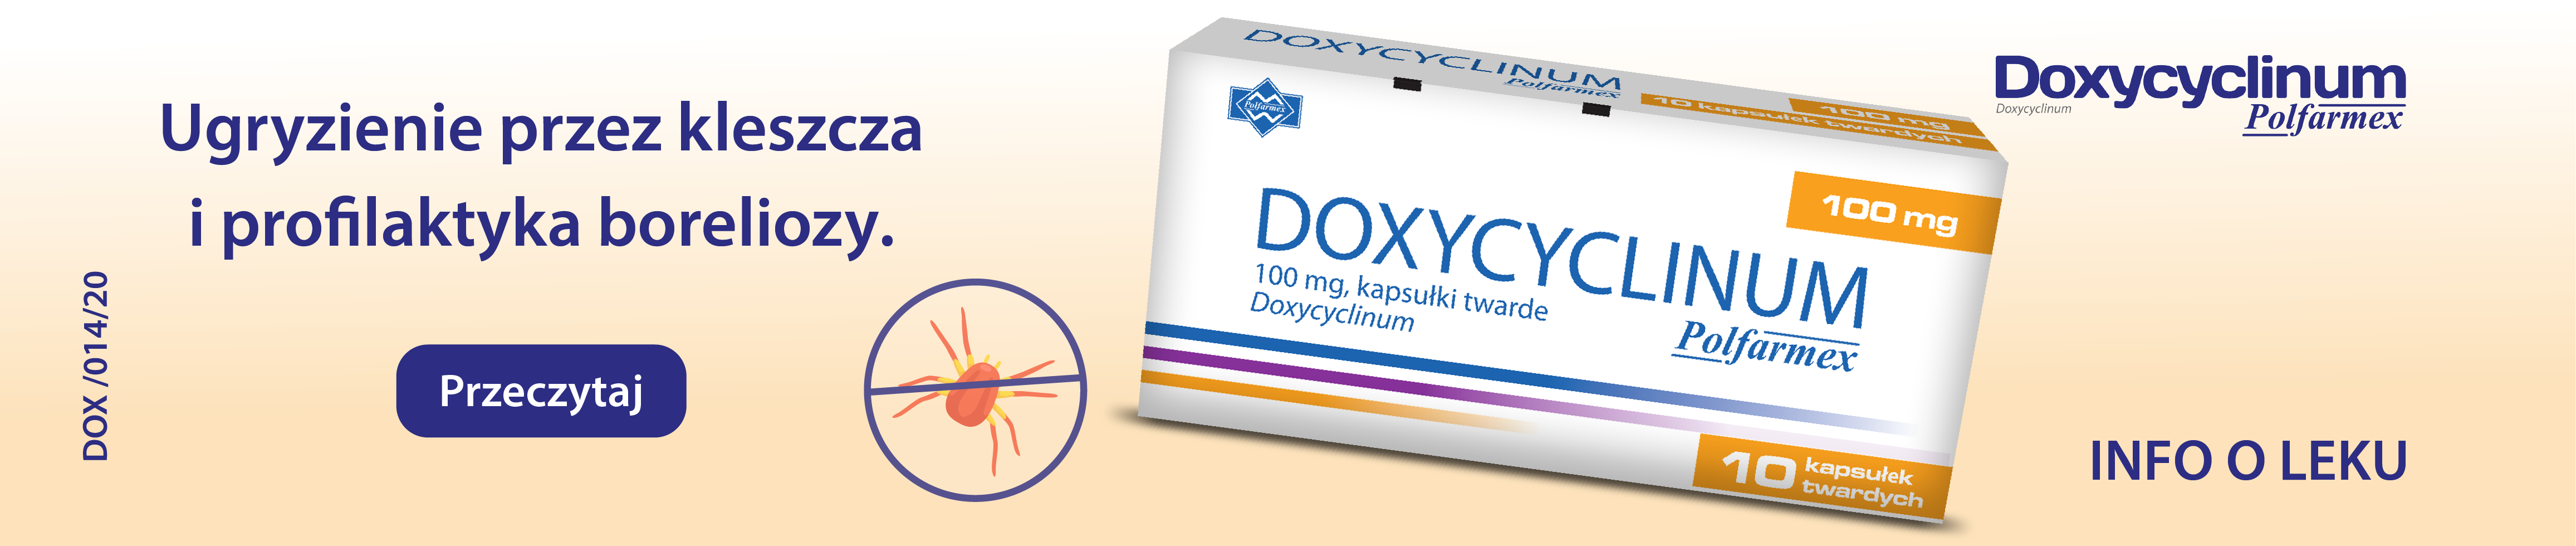 Doxycyclinum